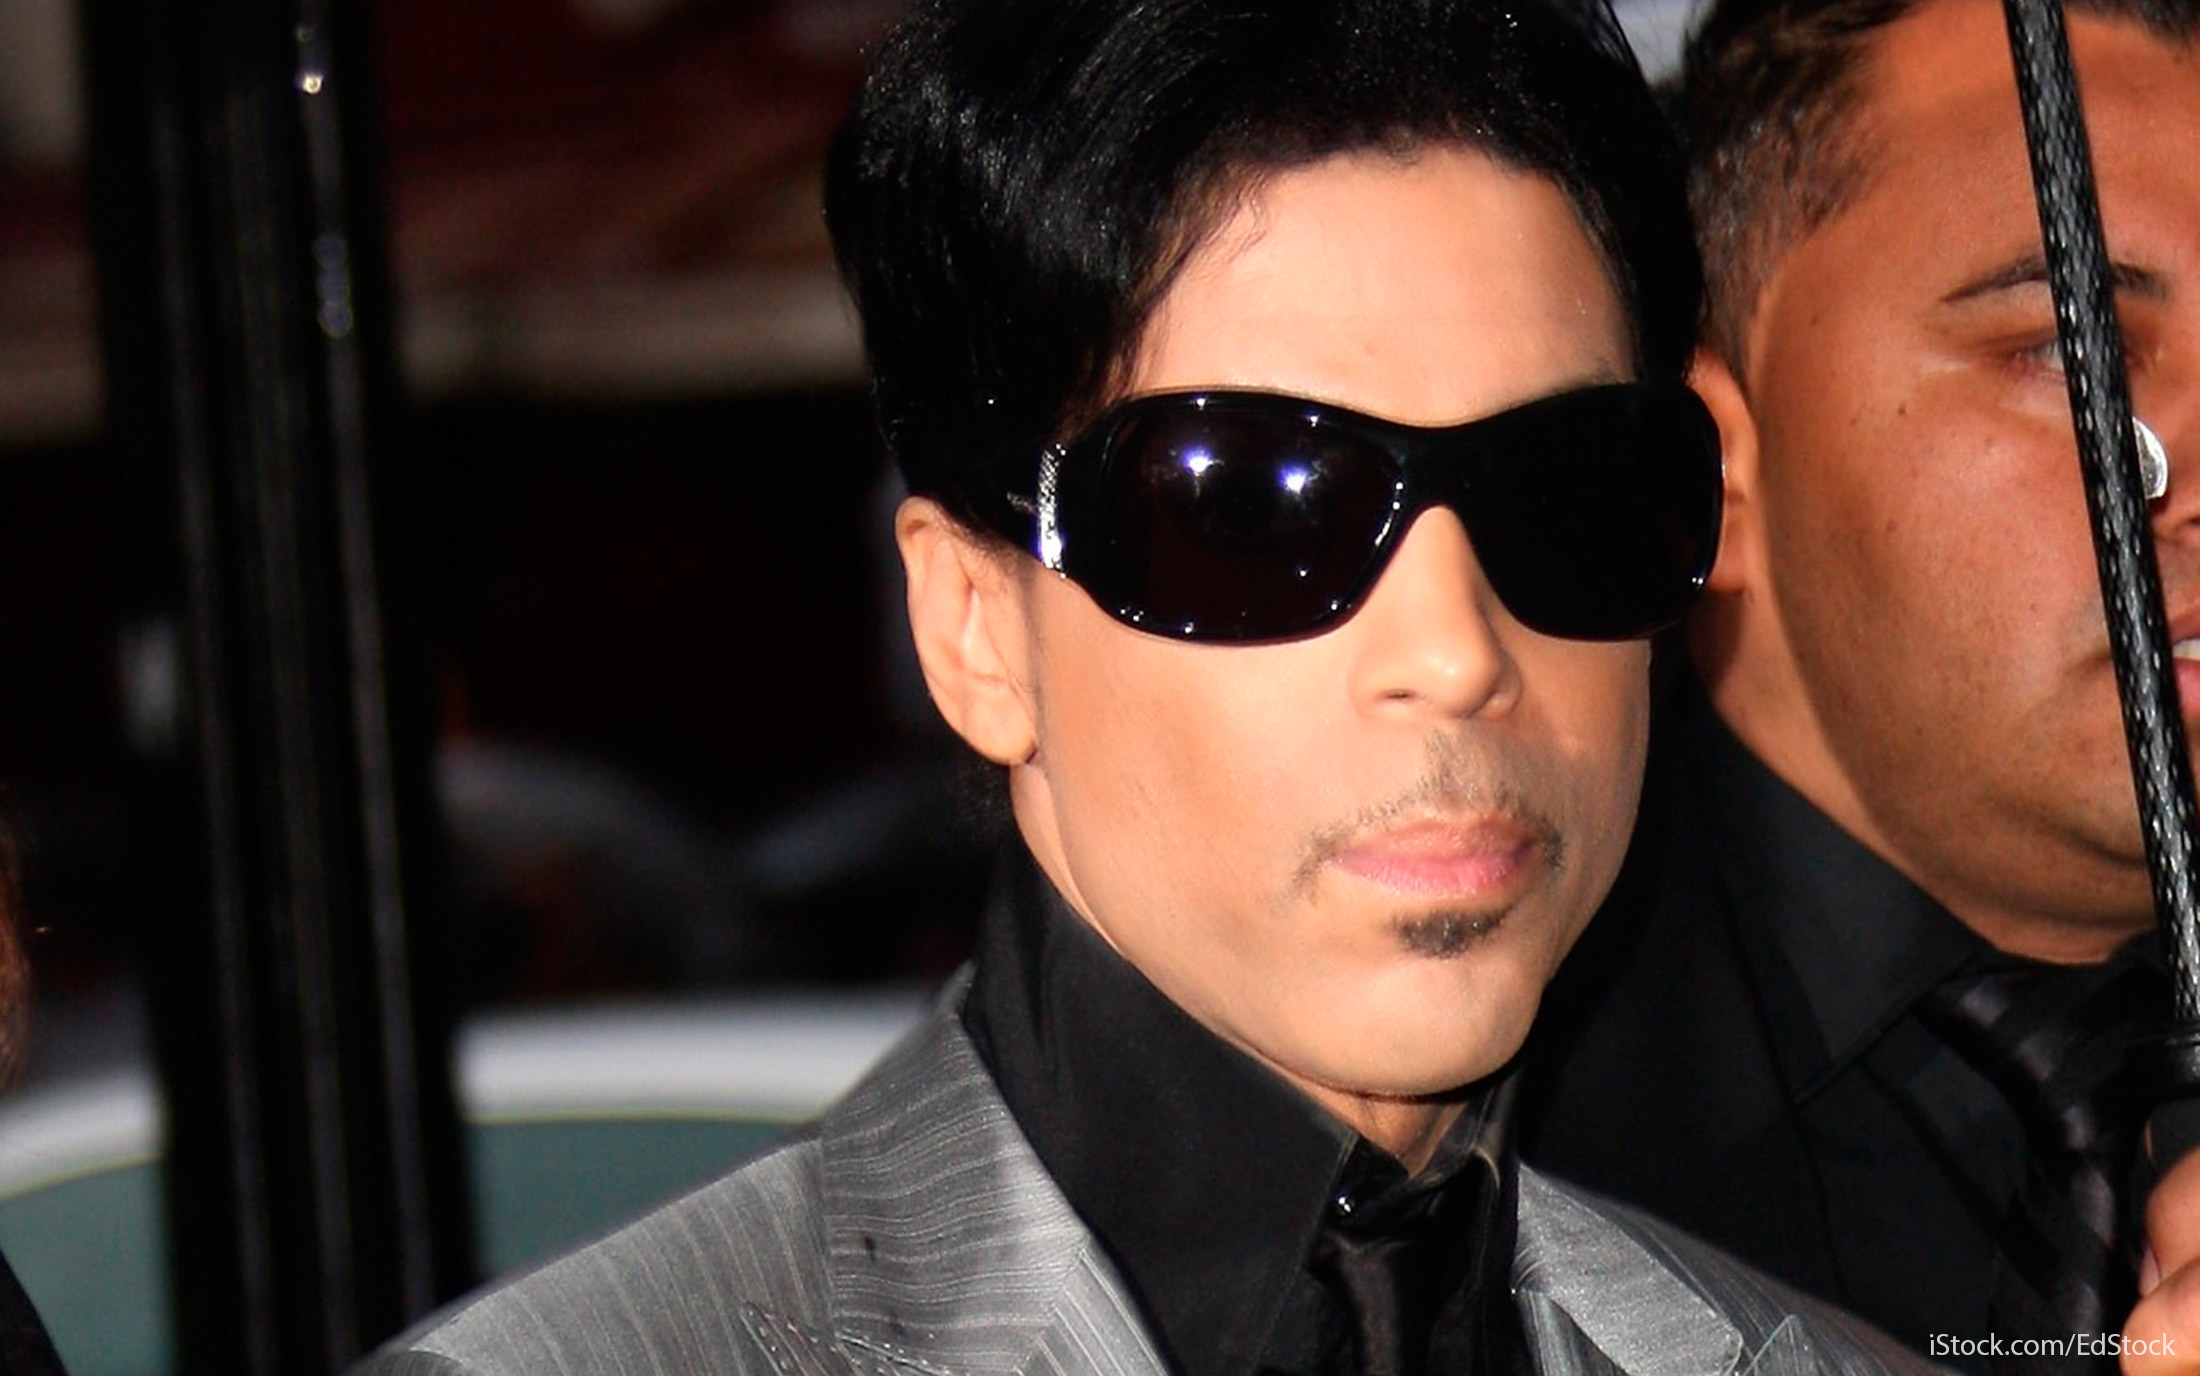 prince dead at 57 net worth of his estate and top hits